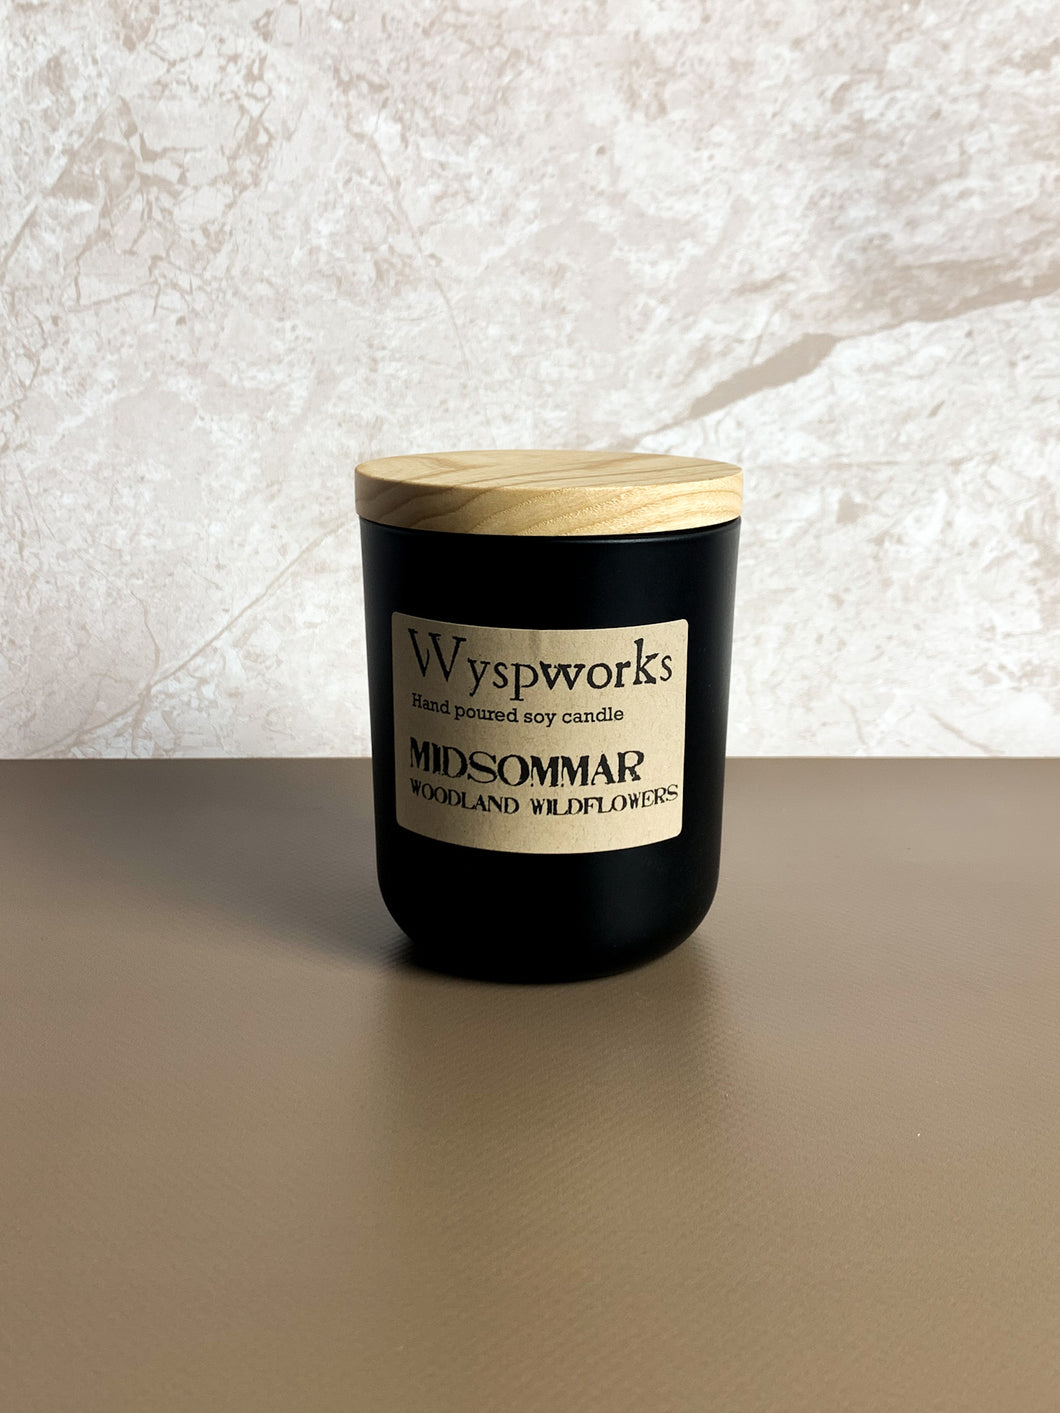 Midsommar Hand Poured Soy Candle by Wyspworks